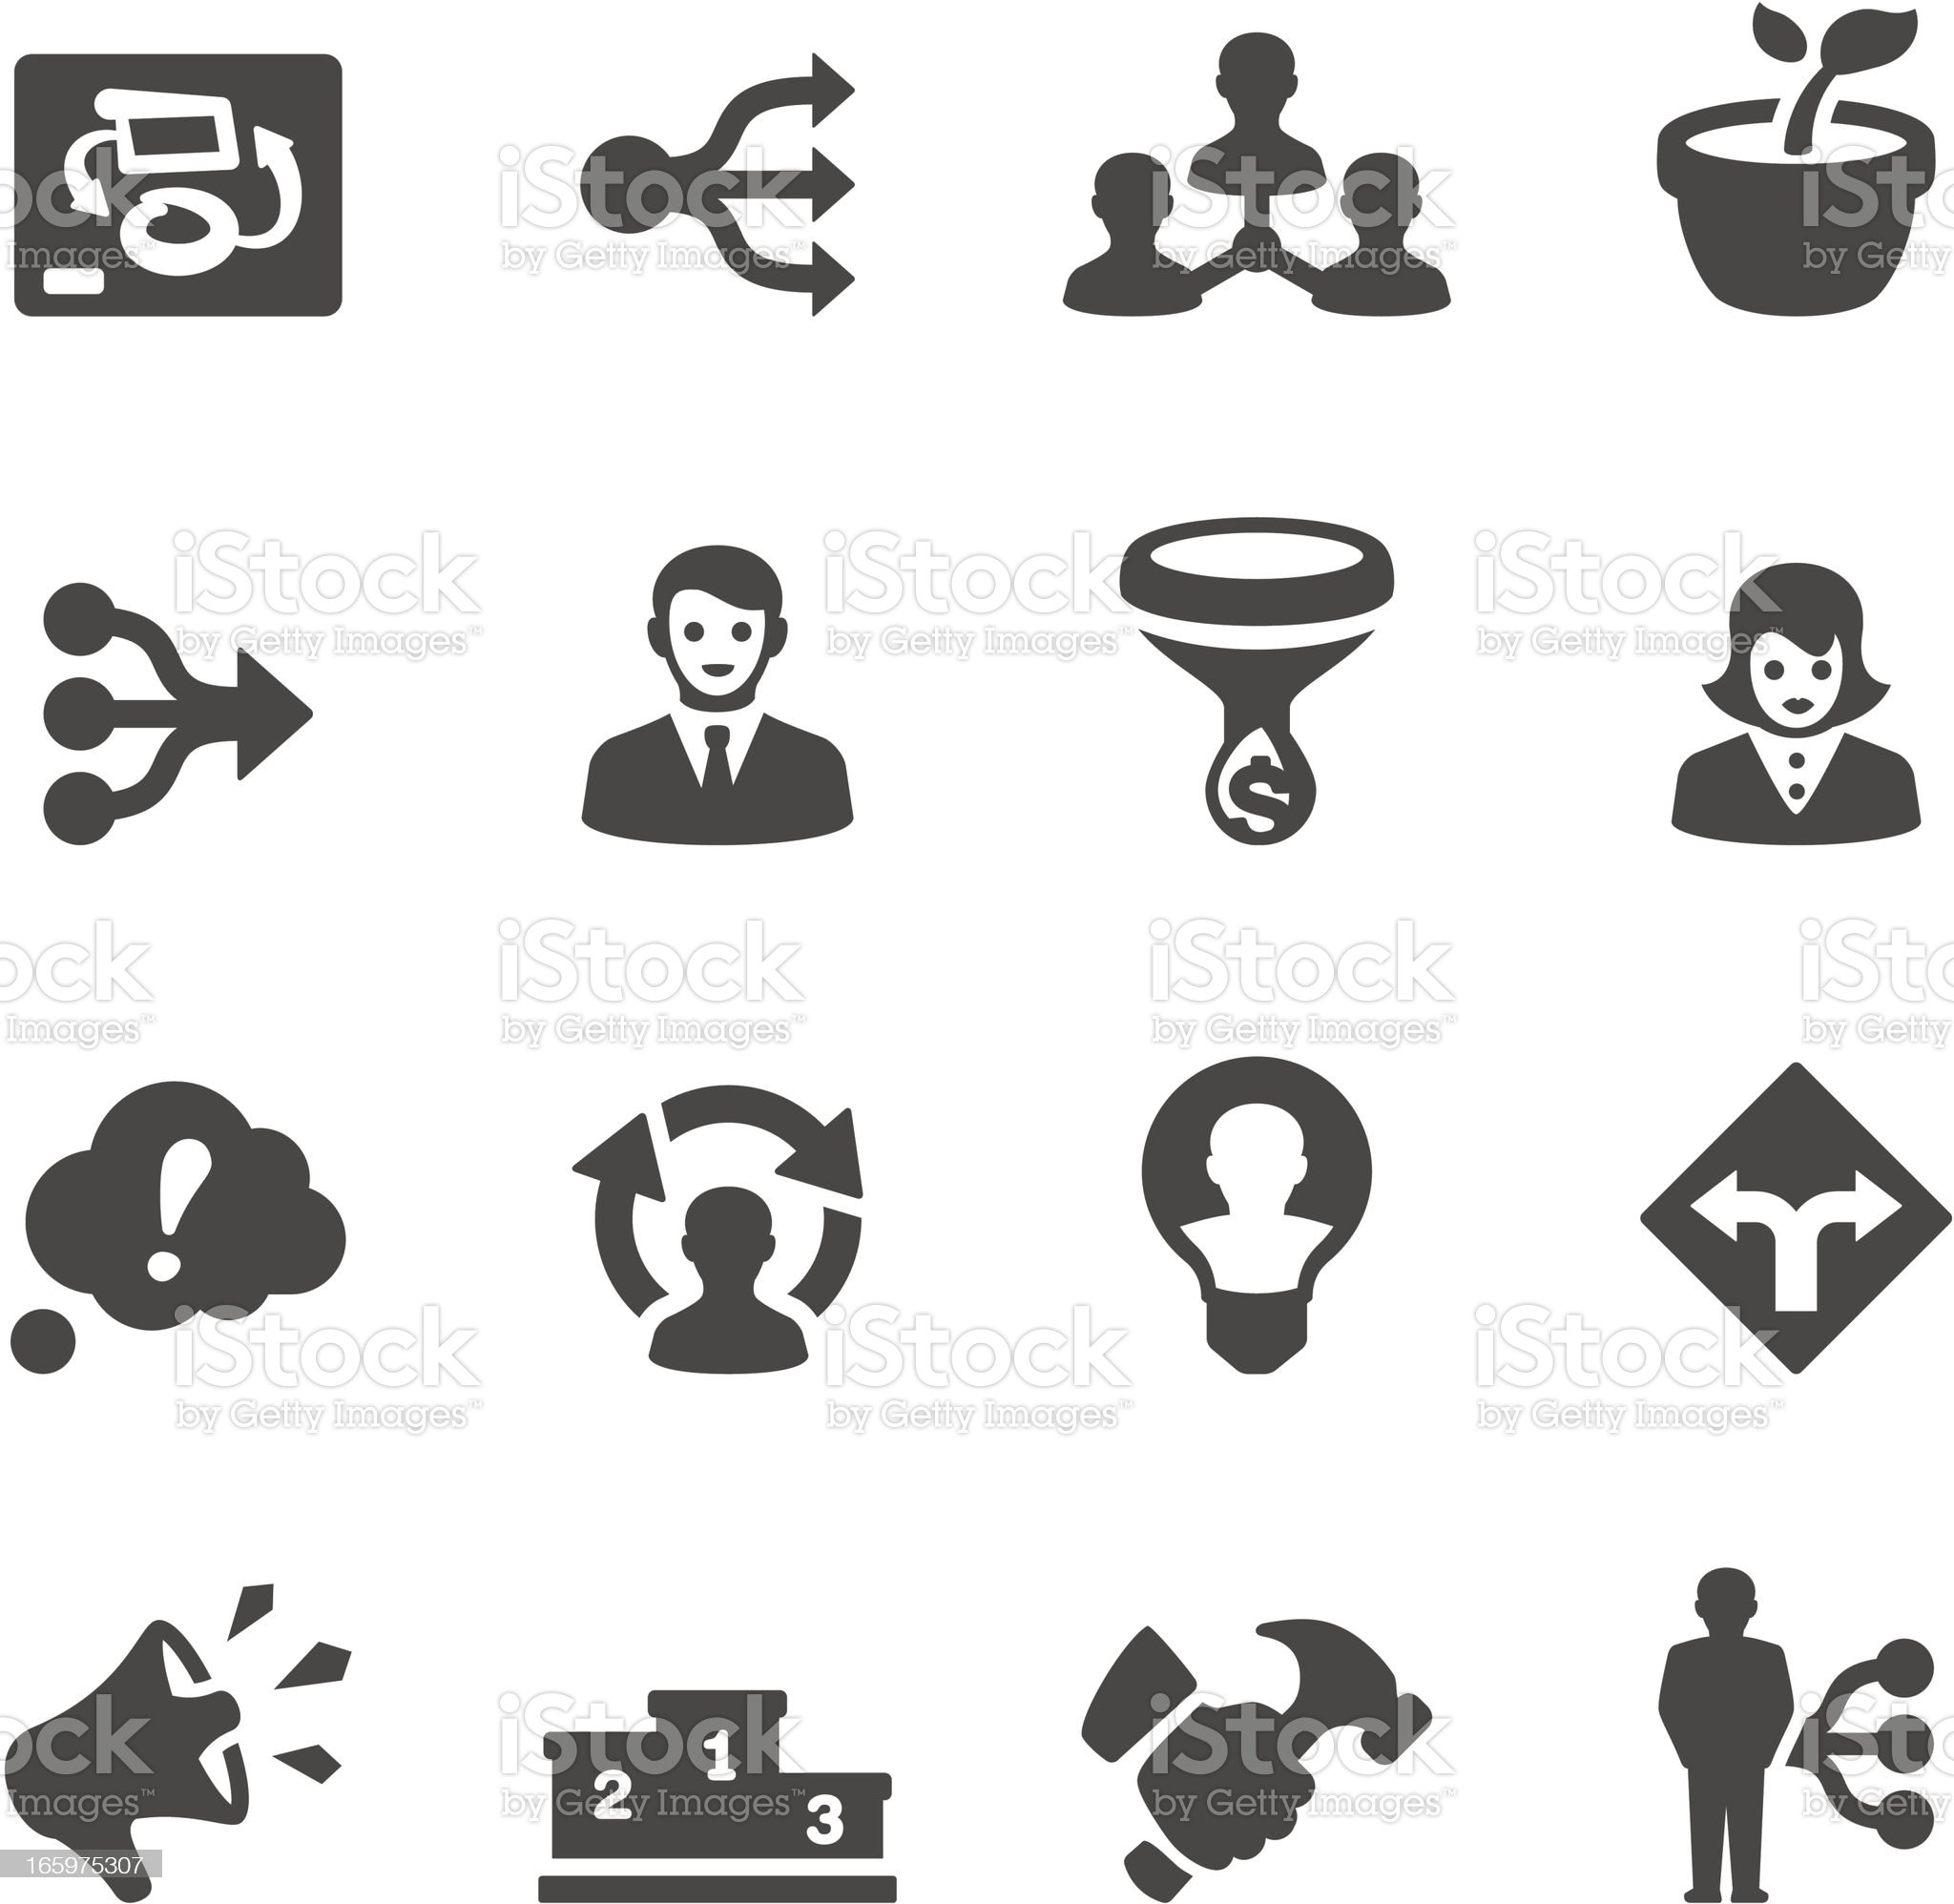 Mobico icons - Management royalty-free stock vector art